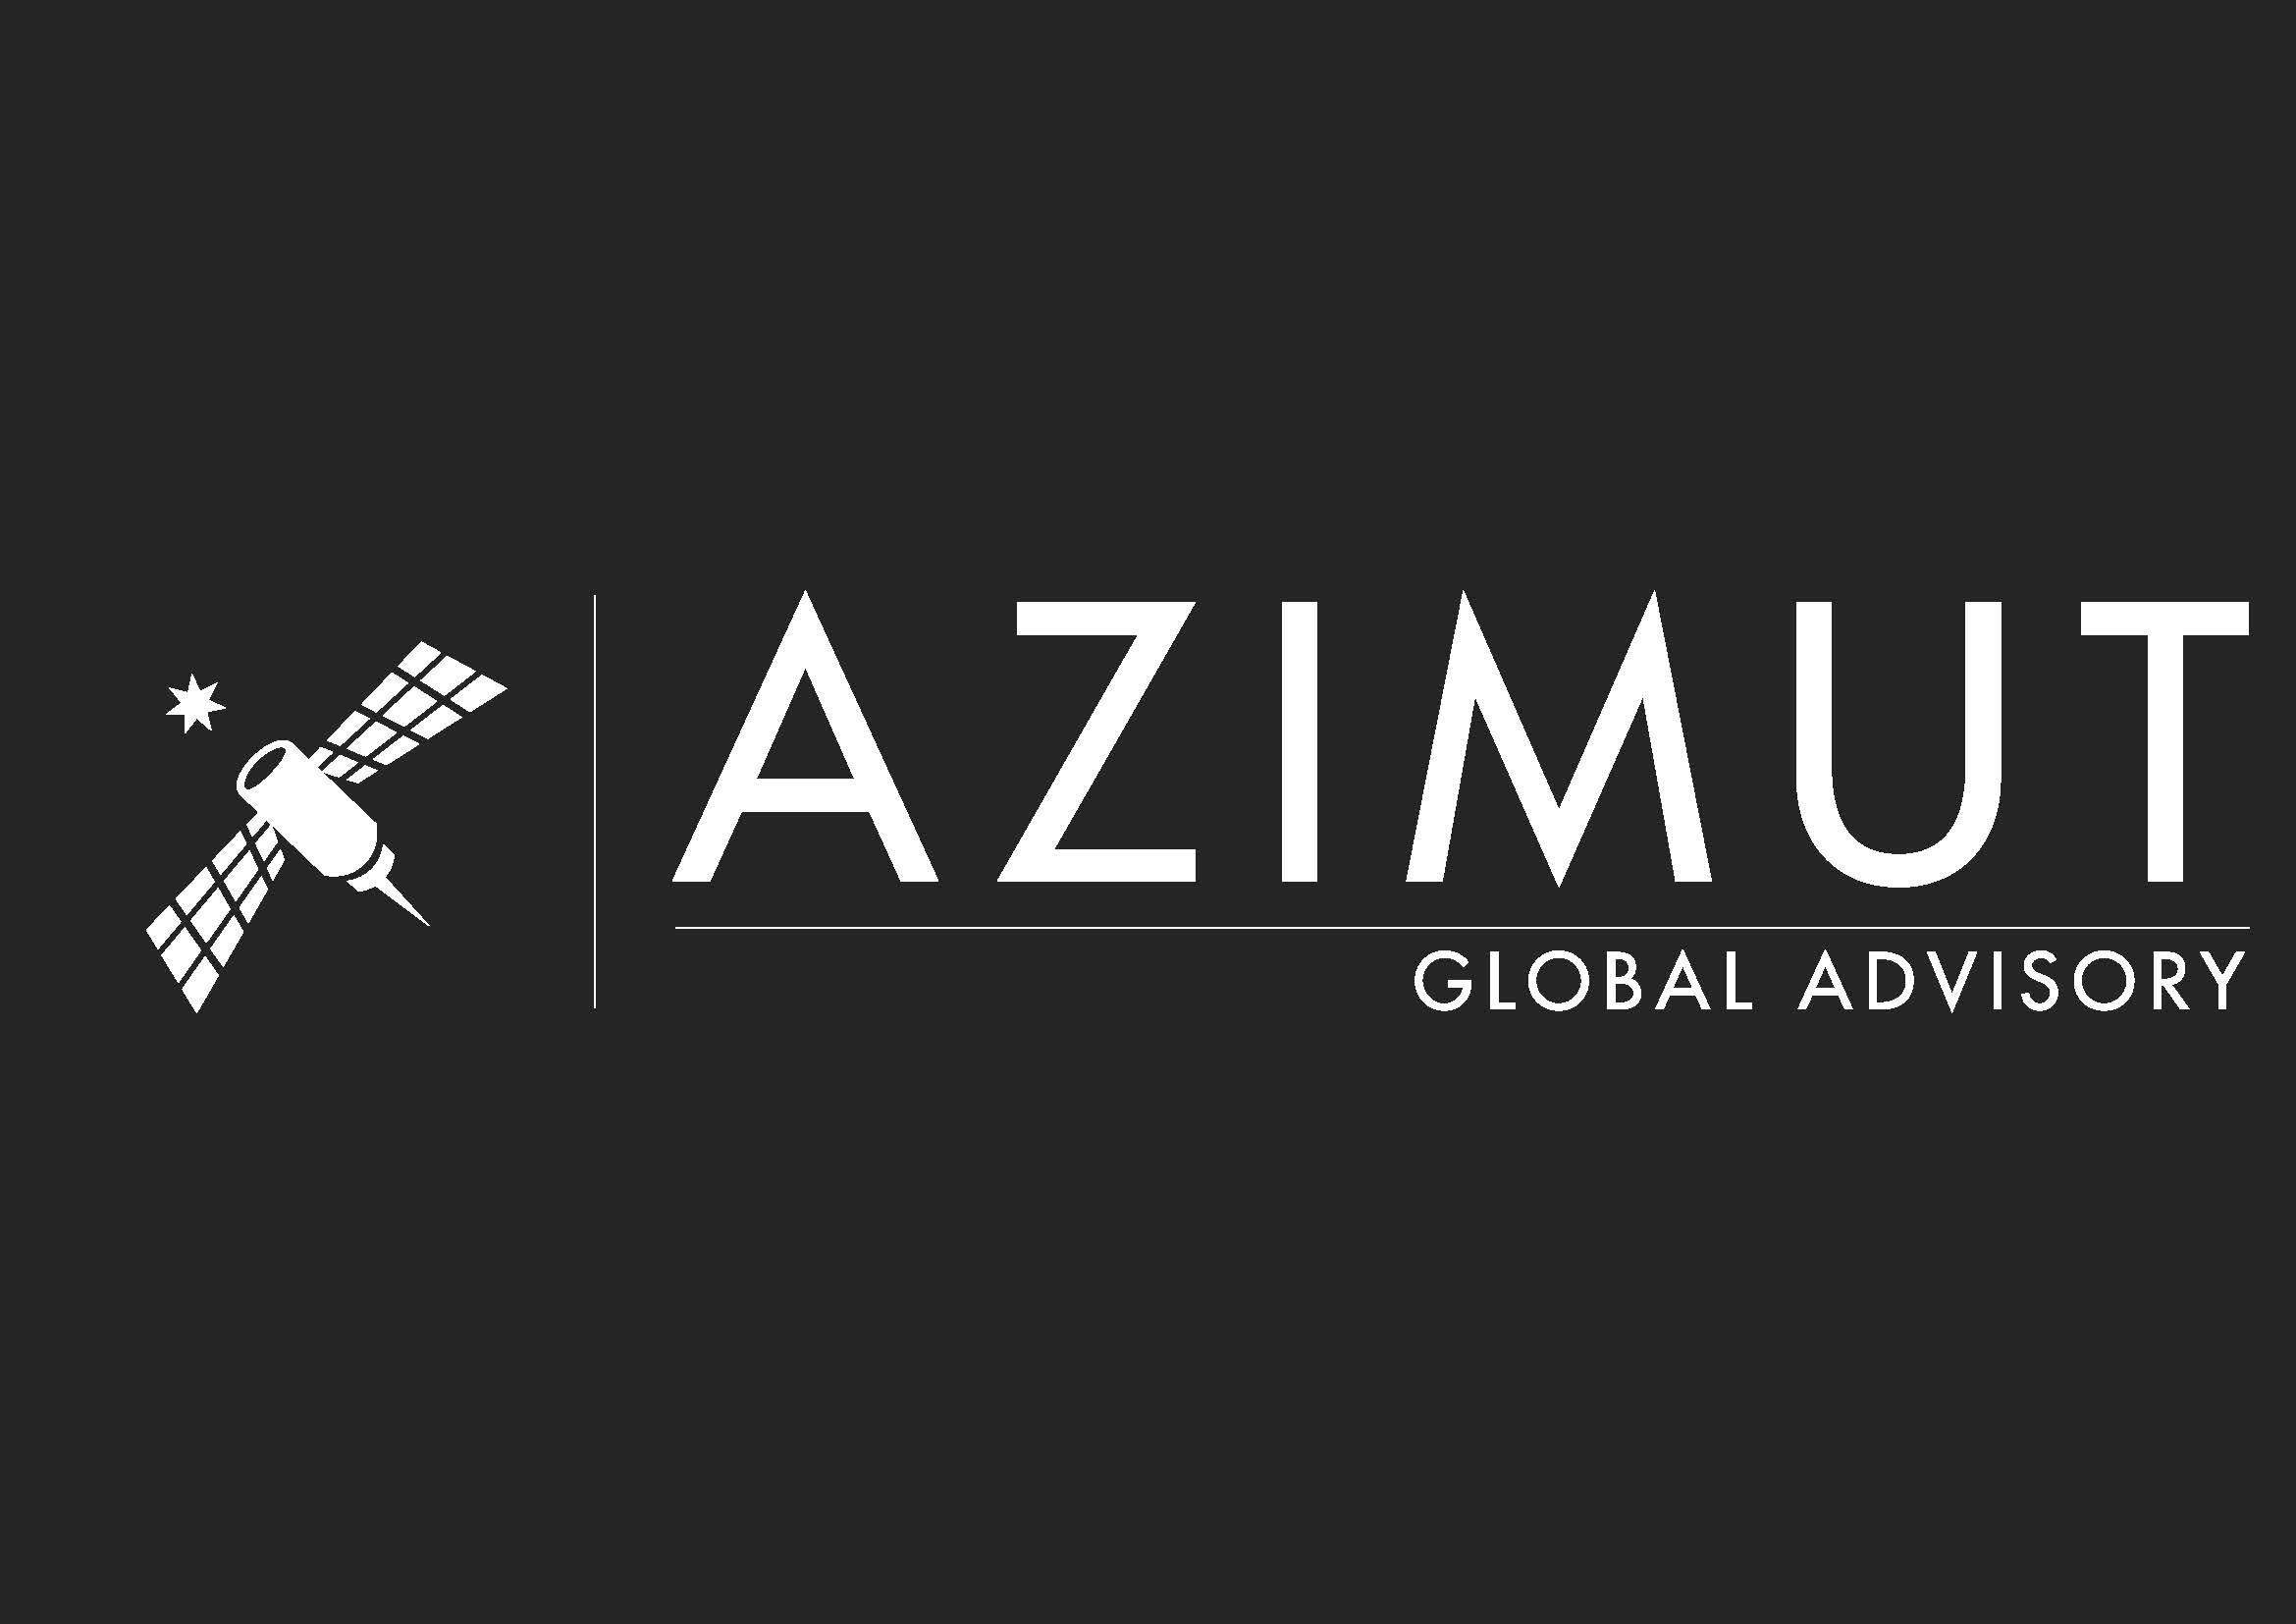 Azimut Global Advisory